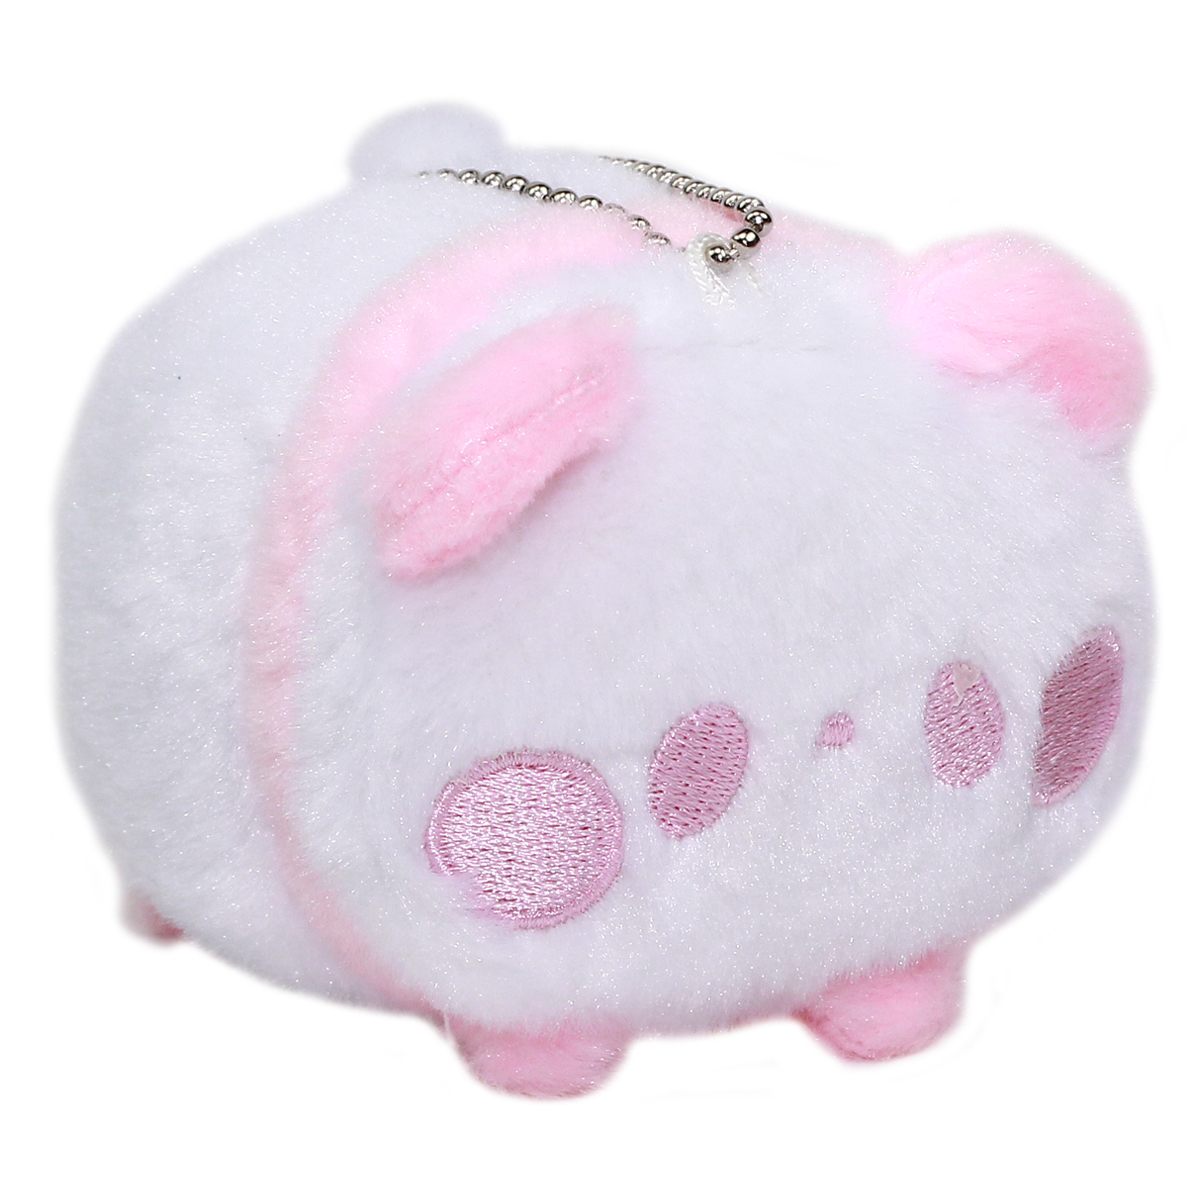 Super Soft Mochii Cute Panda Plush Keychain Pink White 3.5